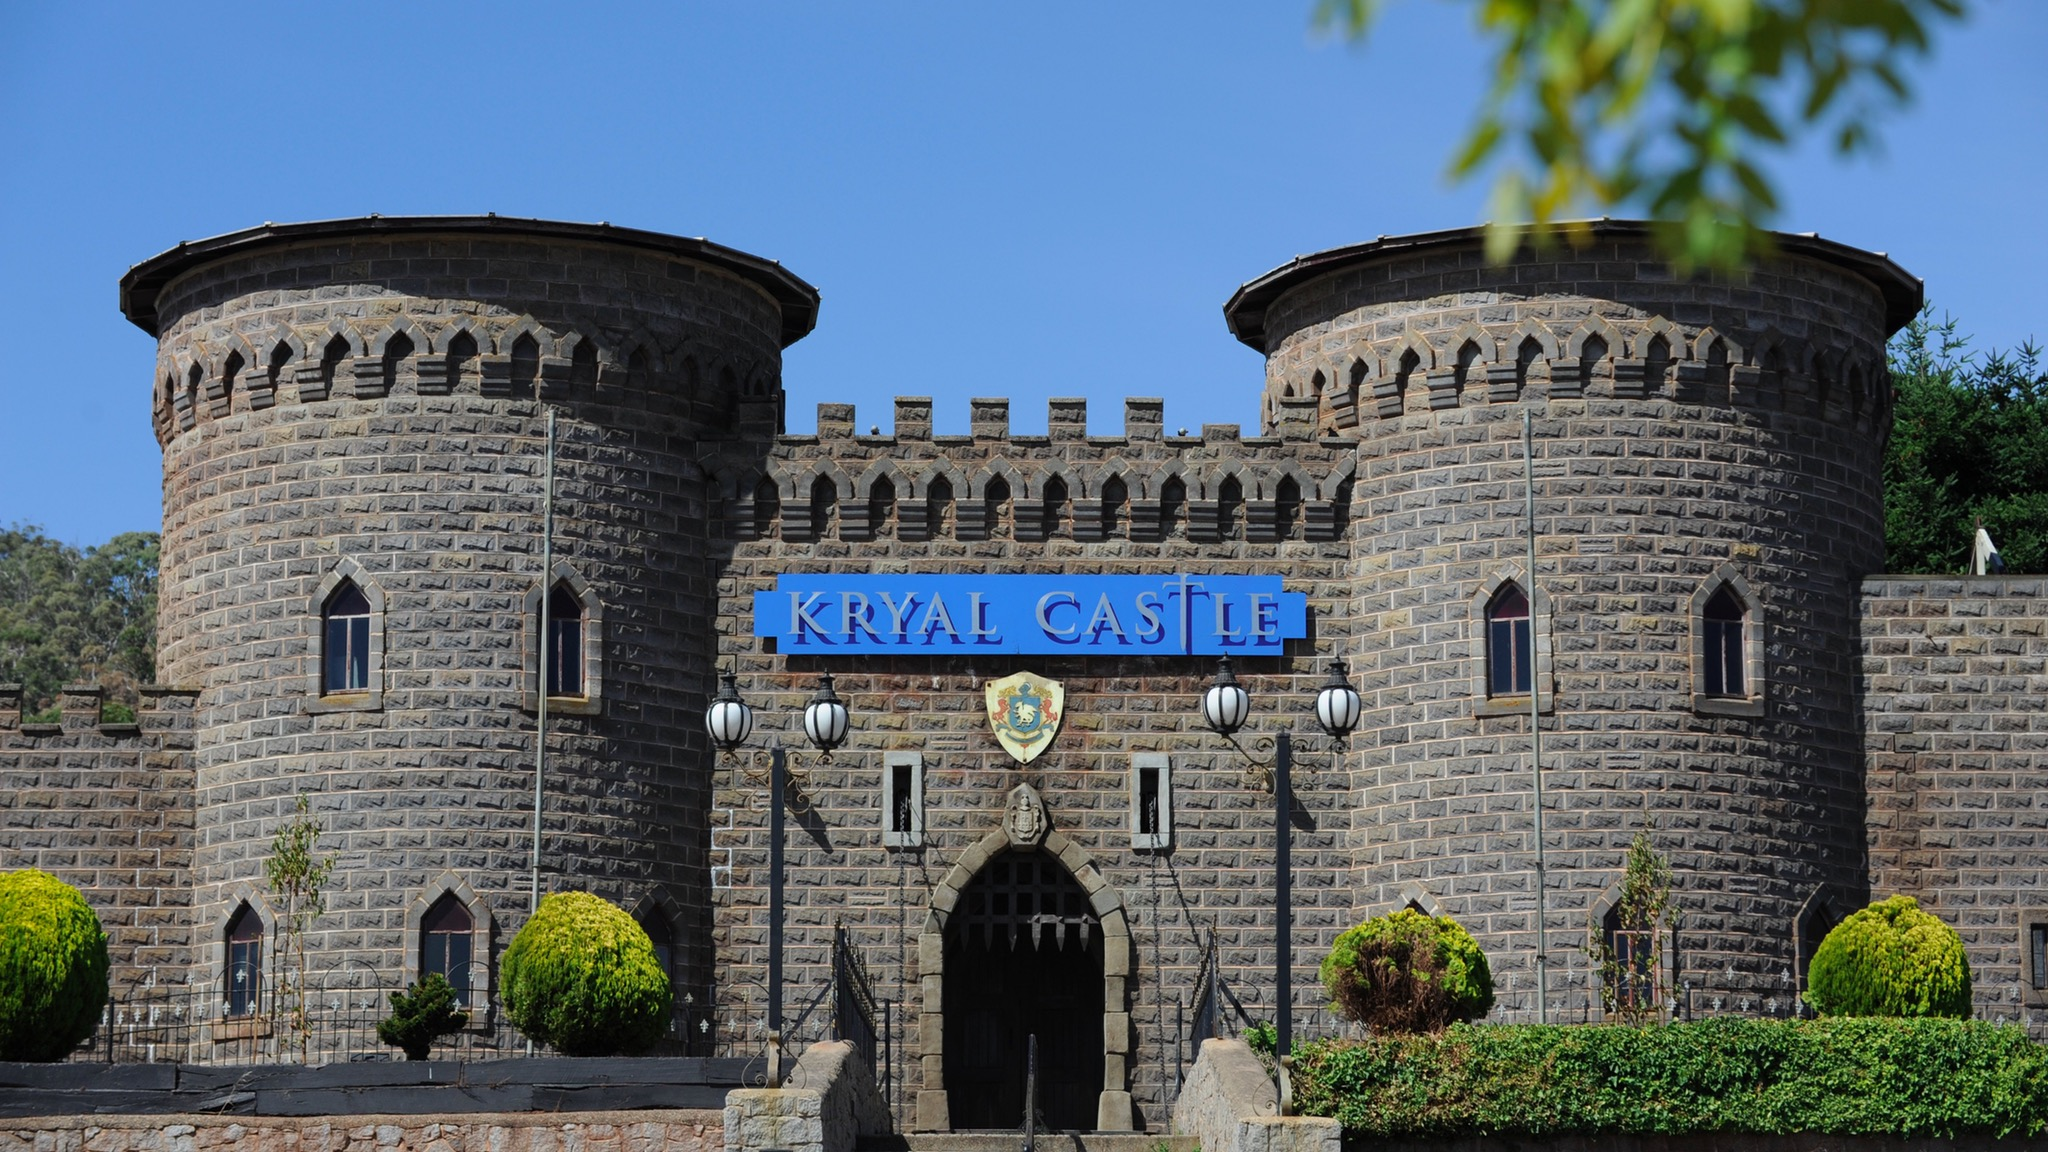 A Land of Medieval Adventure